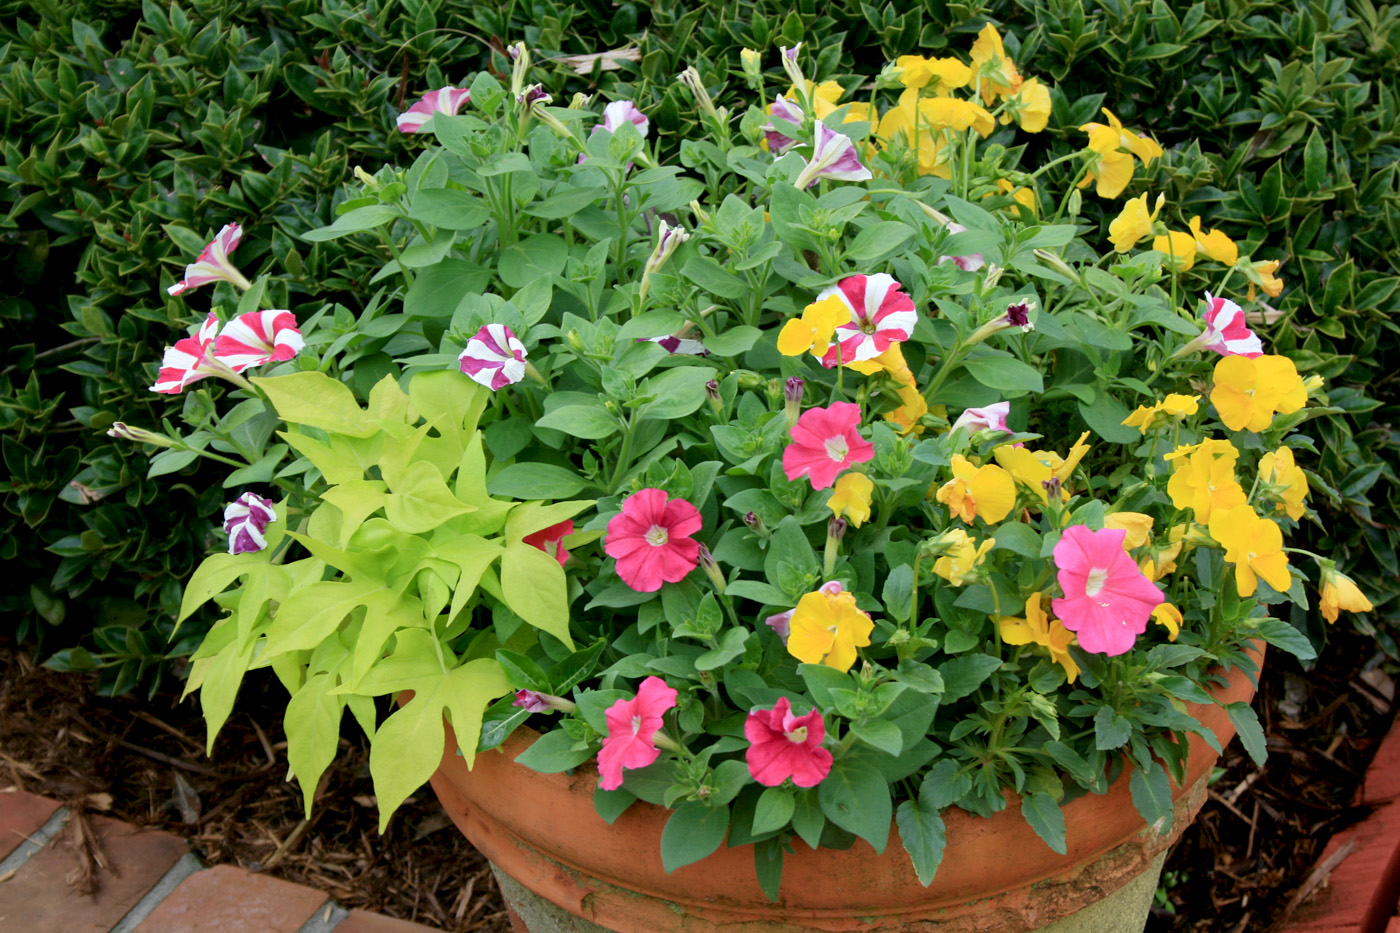 A container pot full of colorful ornamentals.